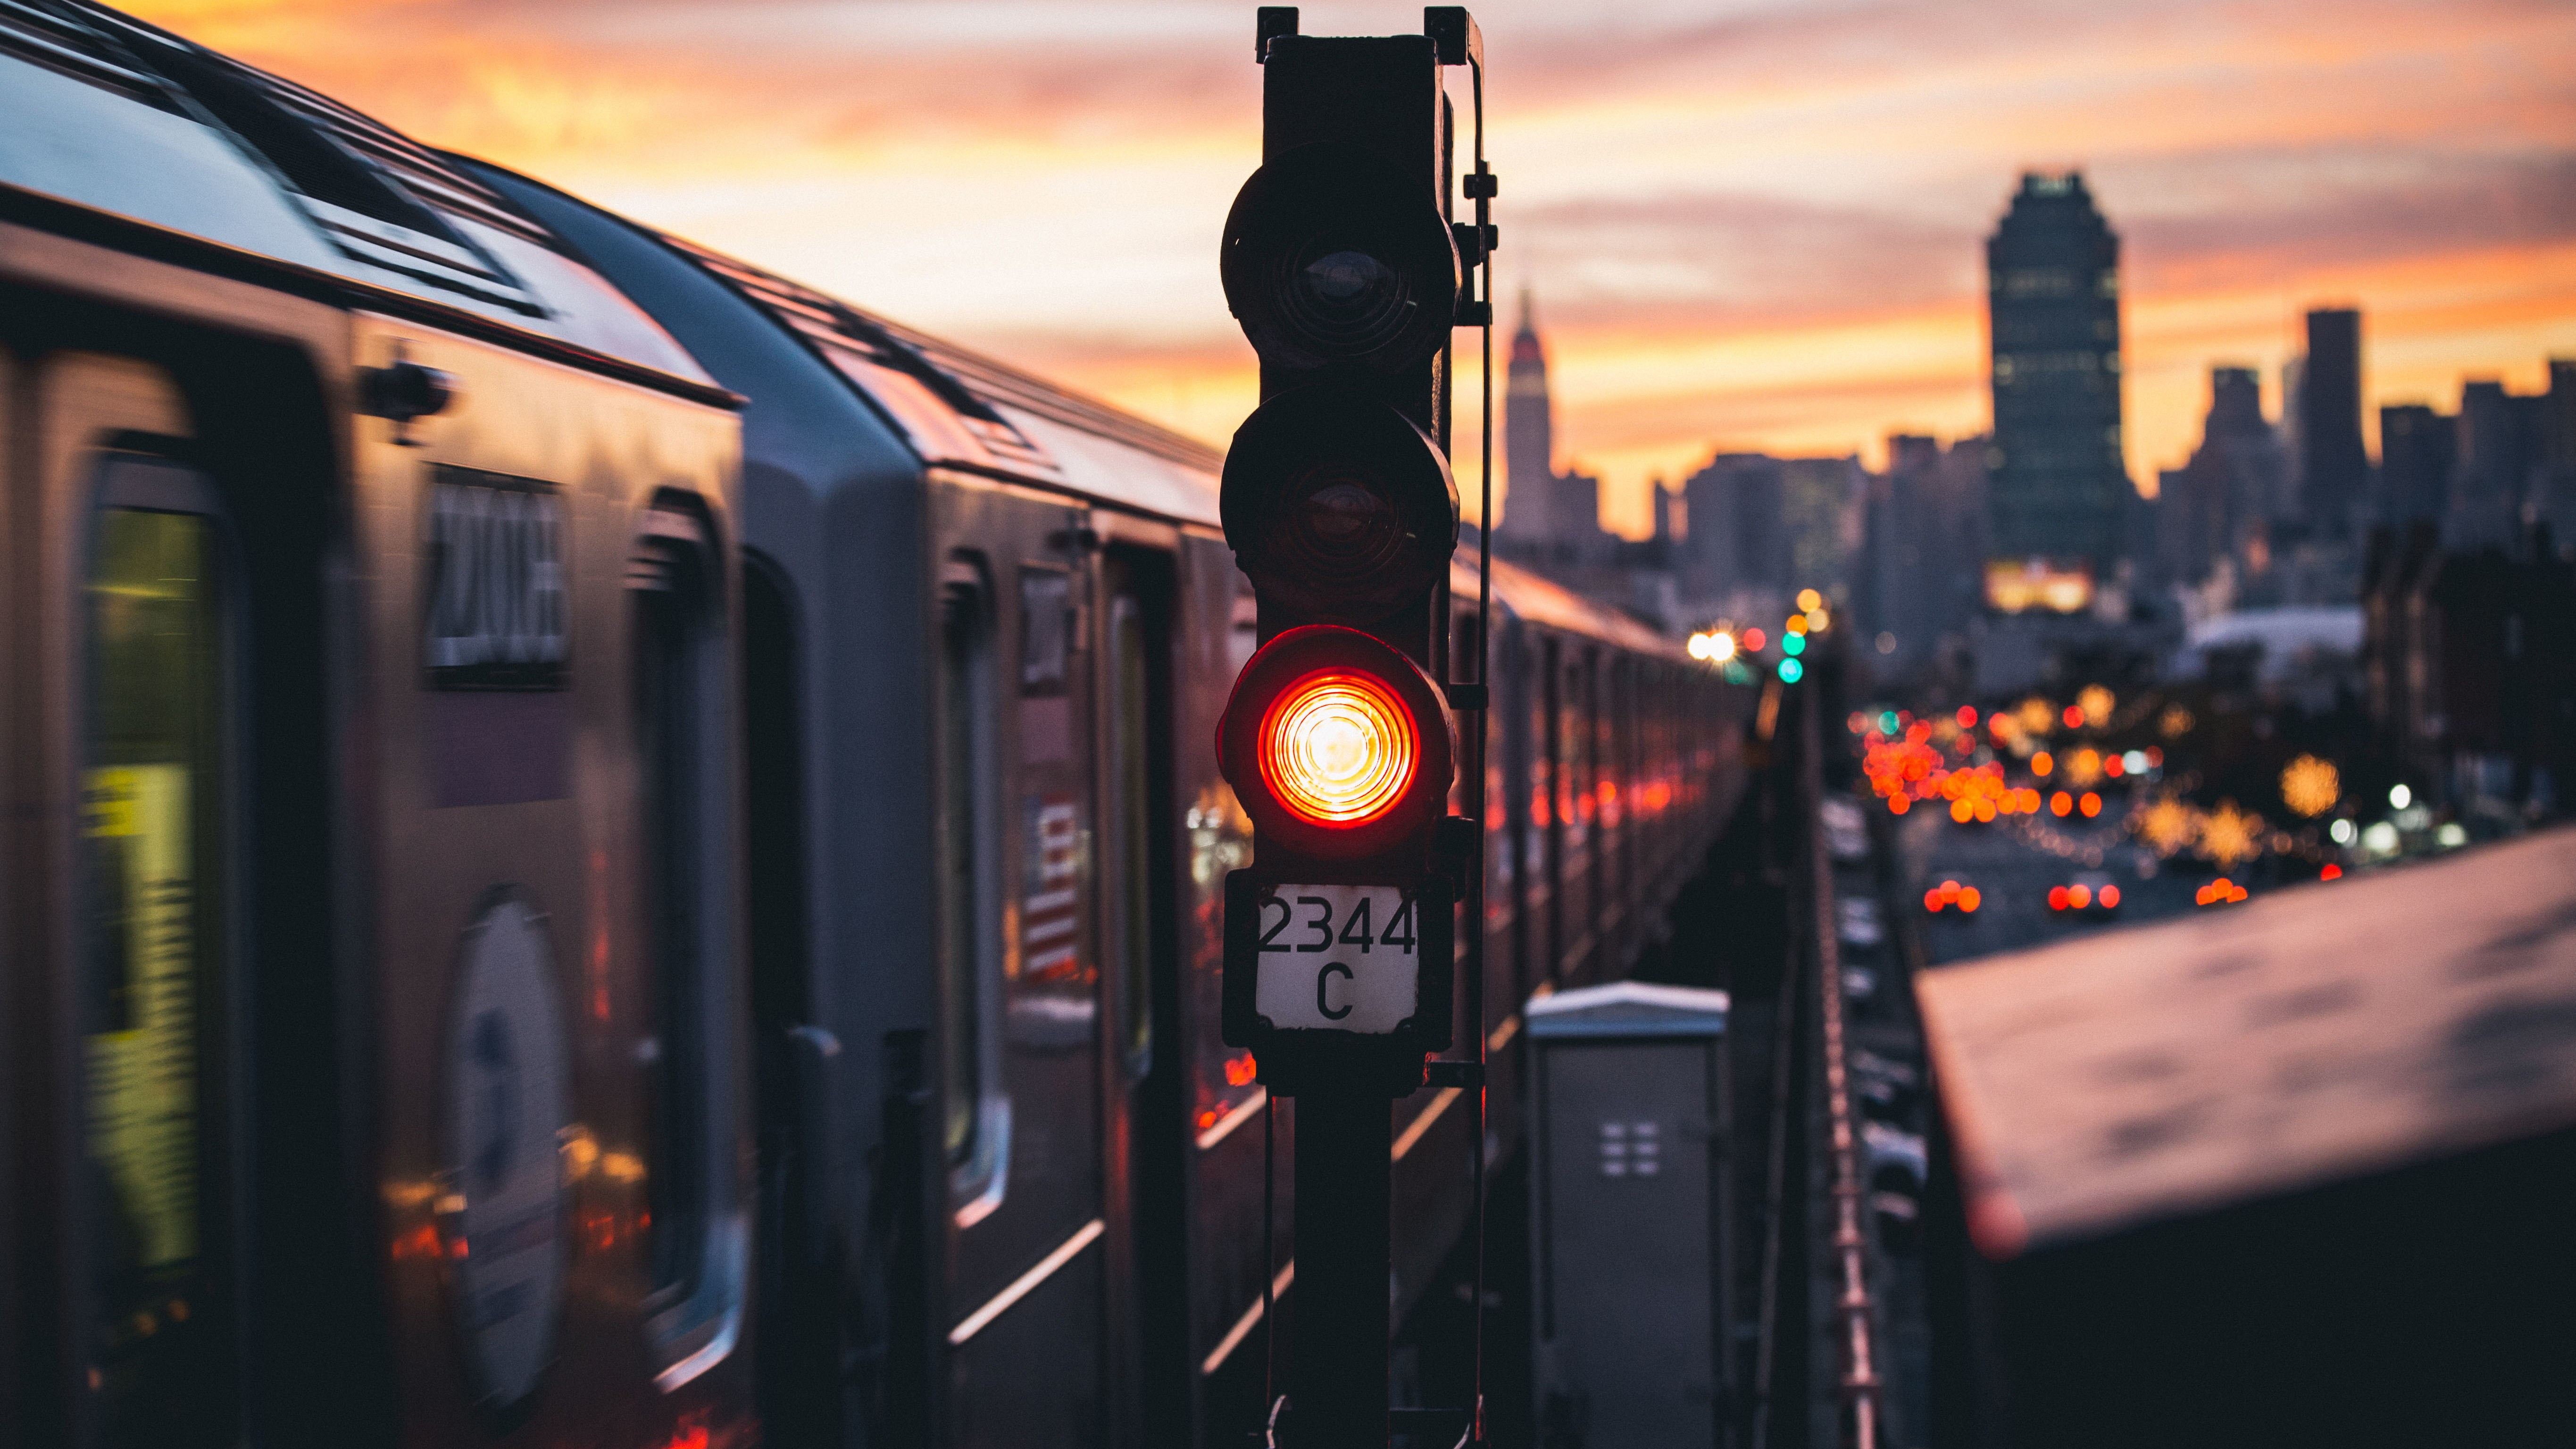 1366x768 Wallpapers Hd Cars Photography City Train New York City Urban Hd Nature 4k